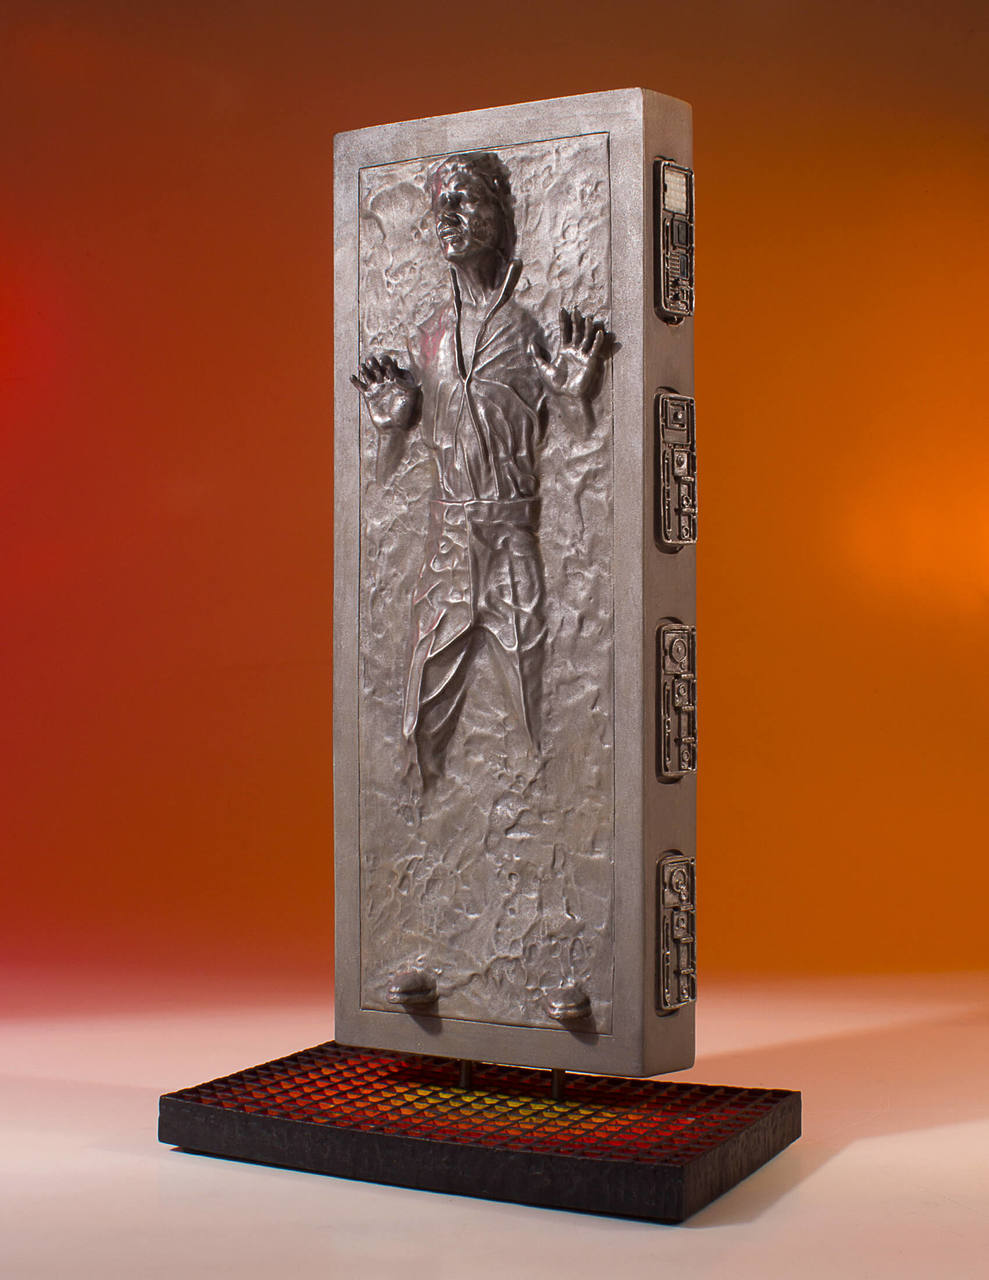 TESB Han Solo In Carbonite Collectors Gallery Statue 3